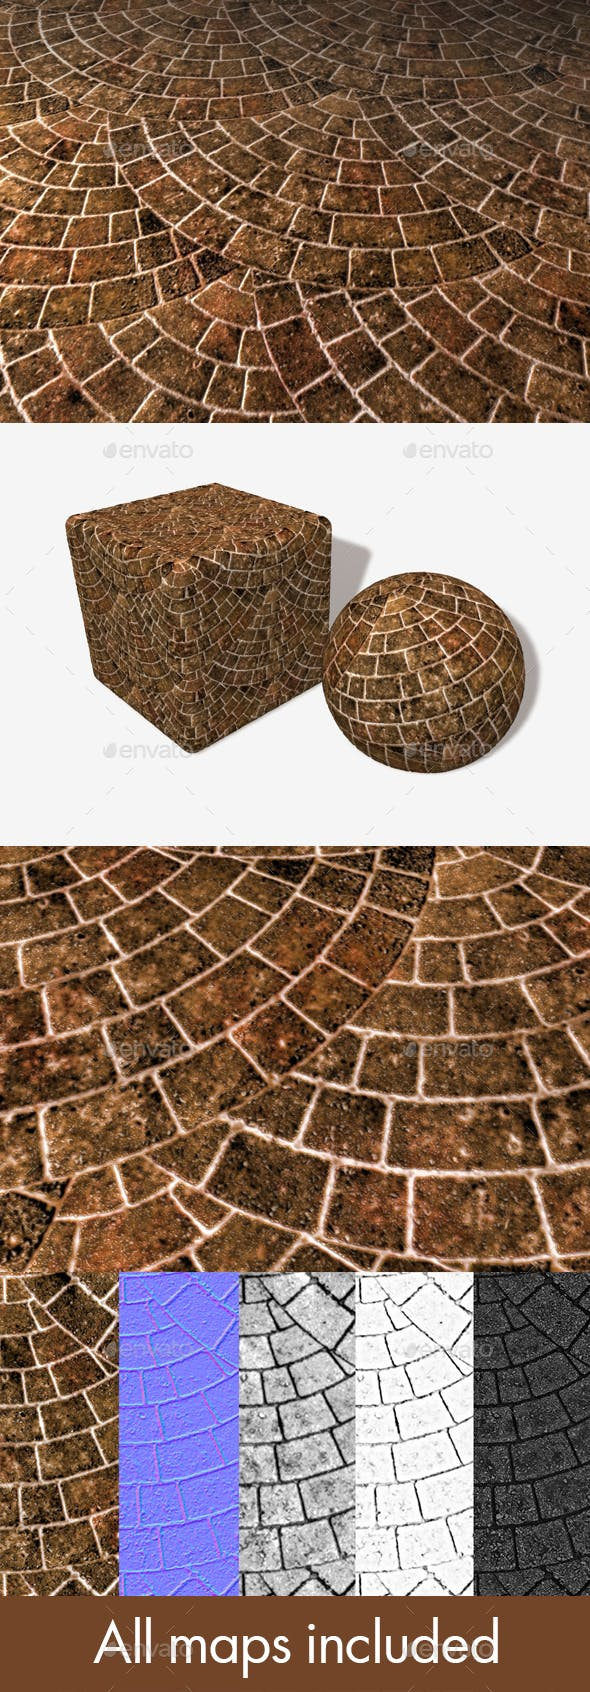 Brick Paving Circle Seamless Texture - 3DOcean Item for Sale